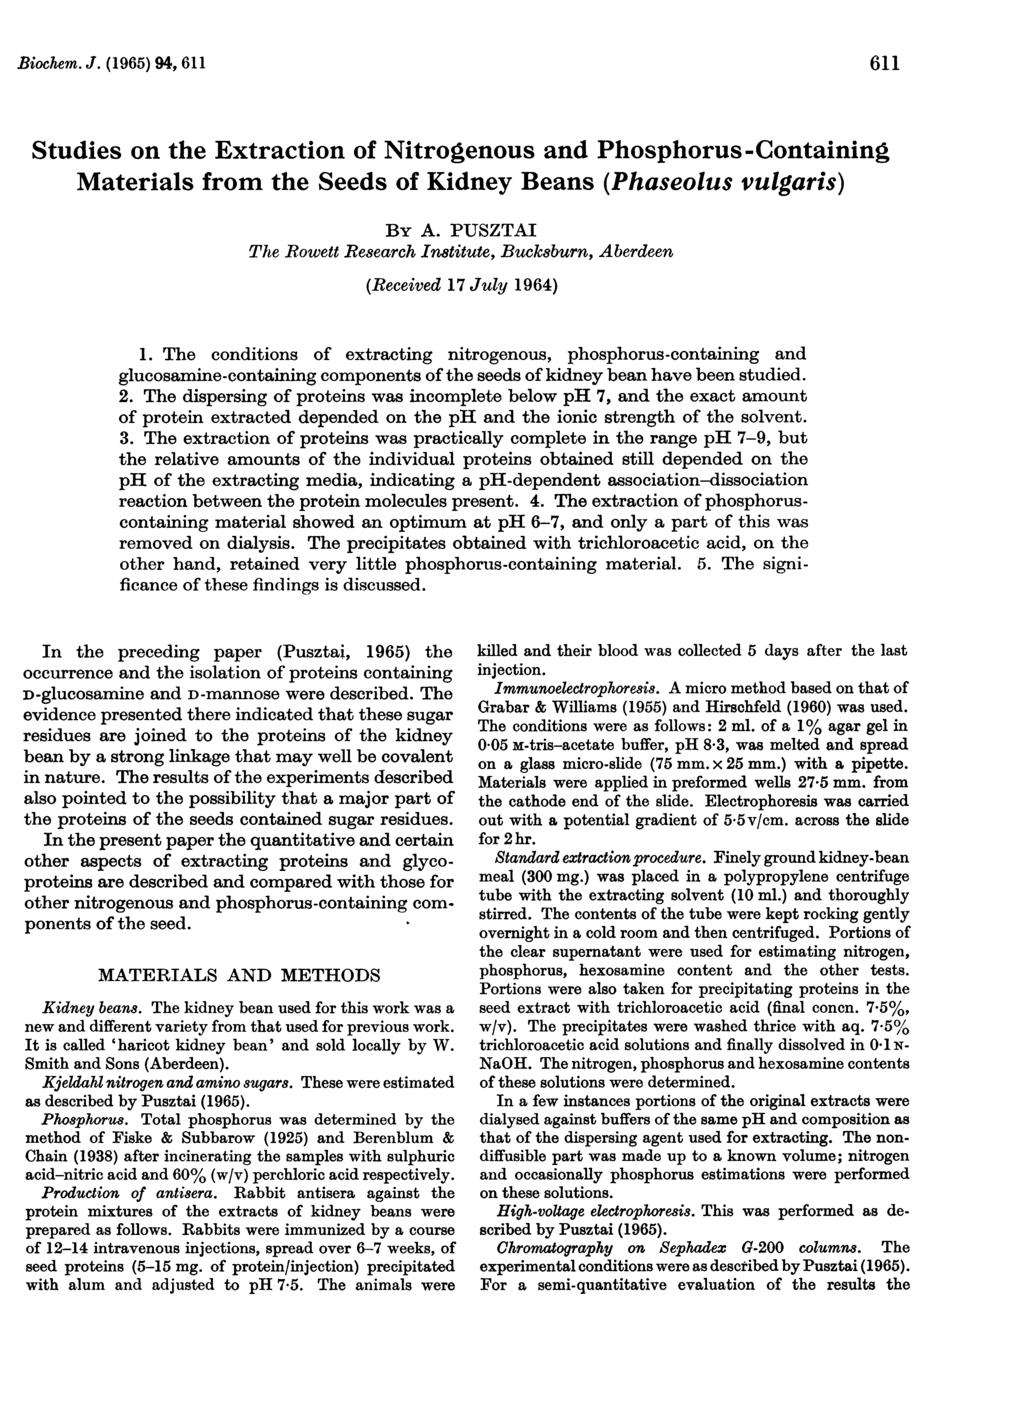 Biochem. J. (1965) 94, 611 611 Studies on the Extraction of Nitrogenous and Phosphorus-Containing Materials from the Seeds of Kidney Beans (Phaseolus vulgaris) By A.